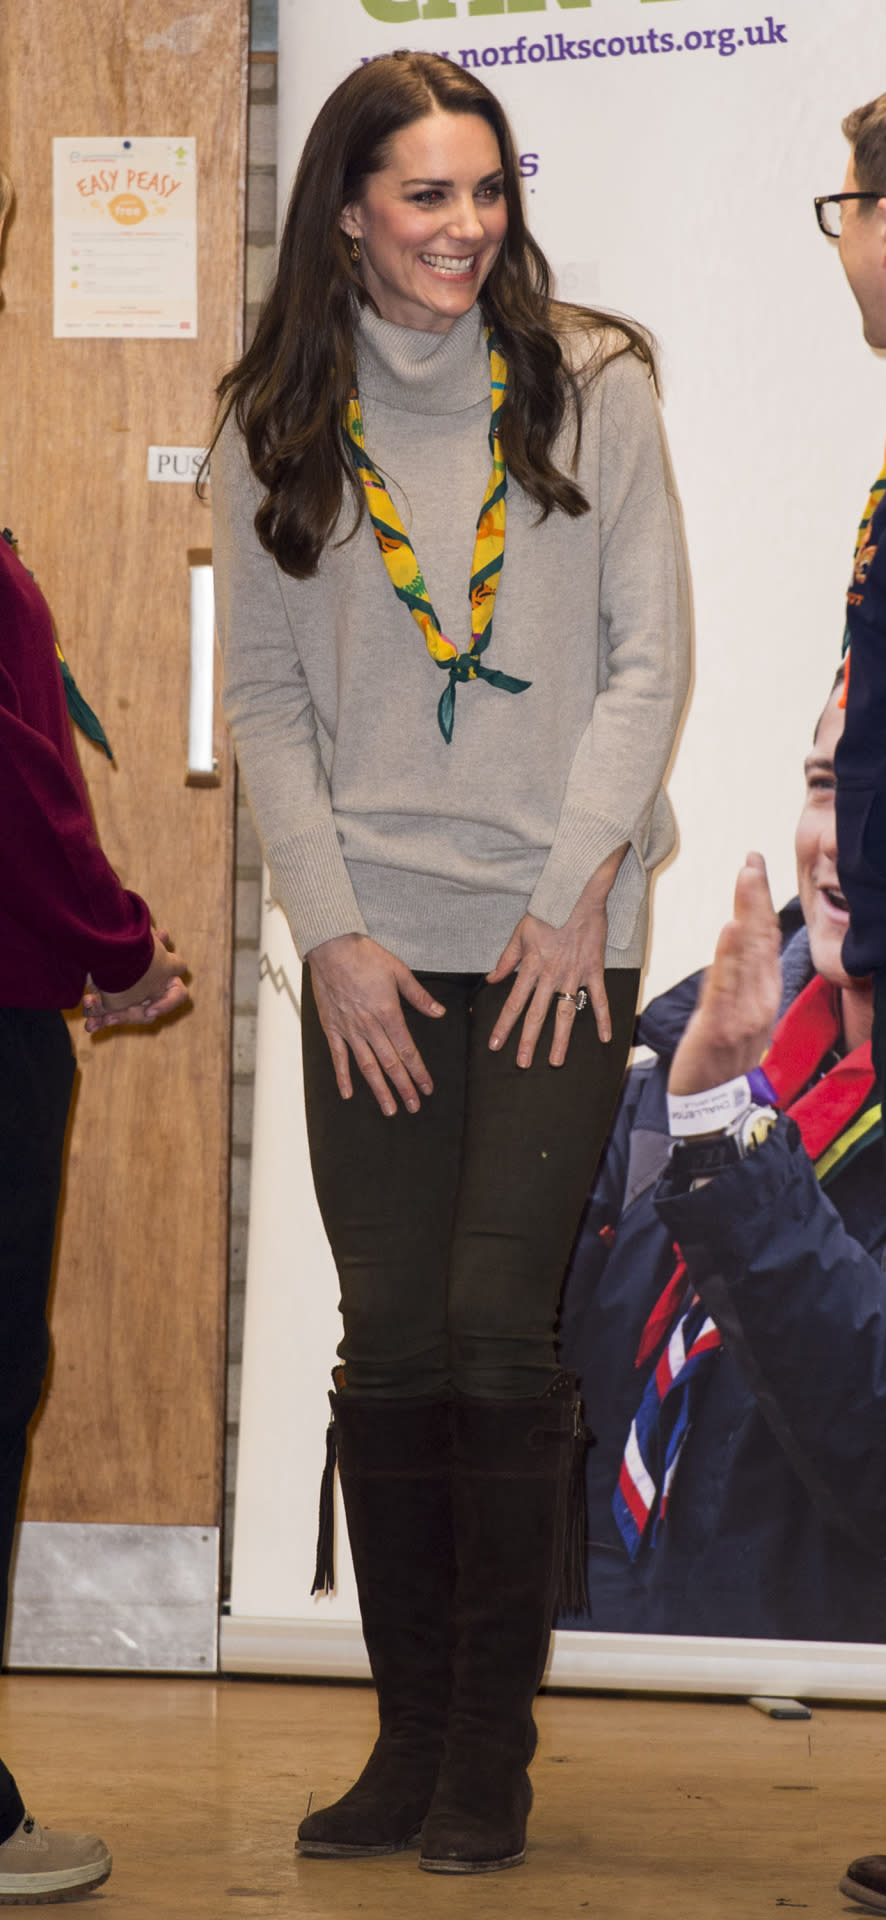 <p>During a visit to the Cub Scouts' King Lynn District meeting space, for the organisation's centenary celebrations, the Duchess made sure she looked the part by donning the traditional necktie members sport. Kate, who was was a Brownie herself 26 years ago, wore the neckerchief over a £170 cashmere turtleneck from Iris and Ink and skinny jeans, paired with her trusty Real Wild Clothing boots that she's worn on a number of occasions. </p><p><i>[Photo: Getty]</i></p>